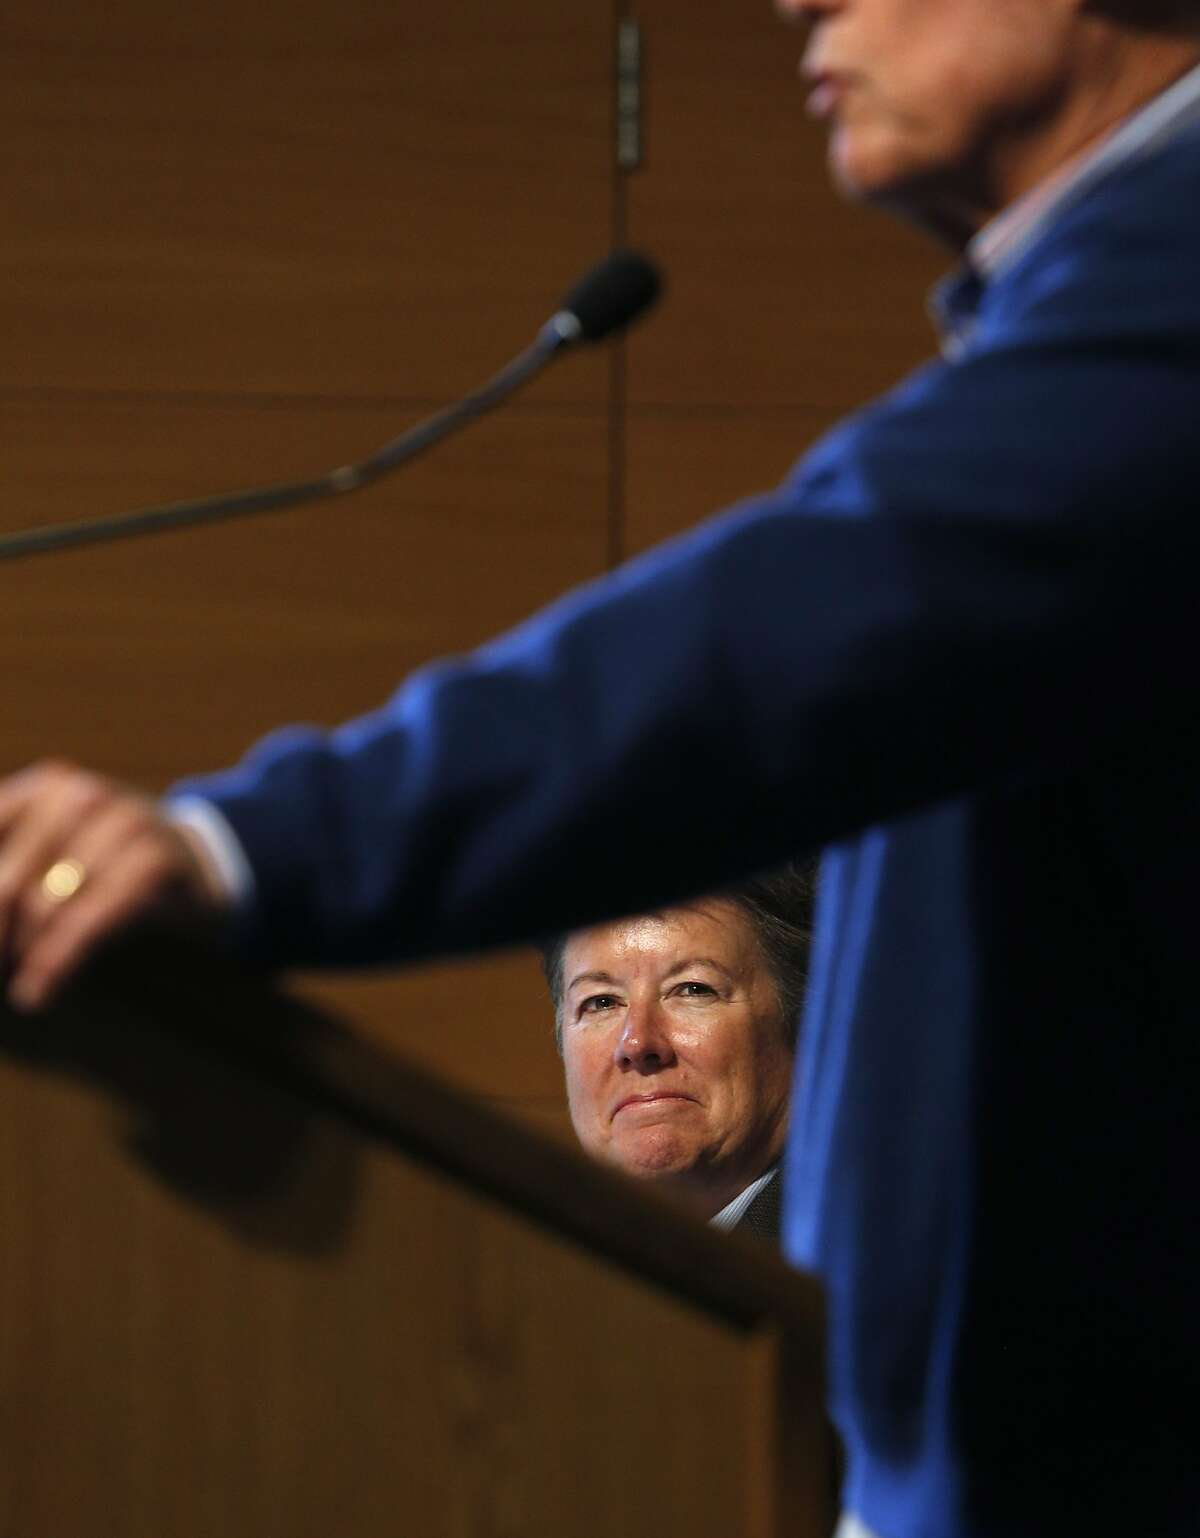 Cal Athletic Director Sandy Barbour, rear, looks up at basketball coach Mike Montgomery as he announced his retirement on Monday, March 31, 2014, at Haas Pavilion in Berkeley, Calif.